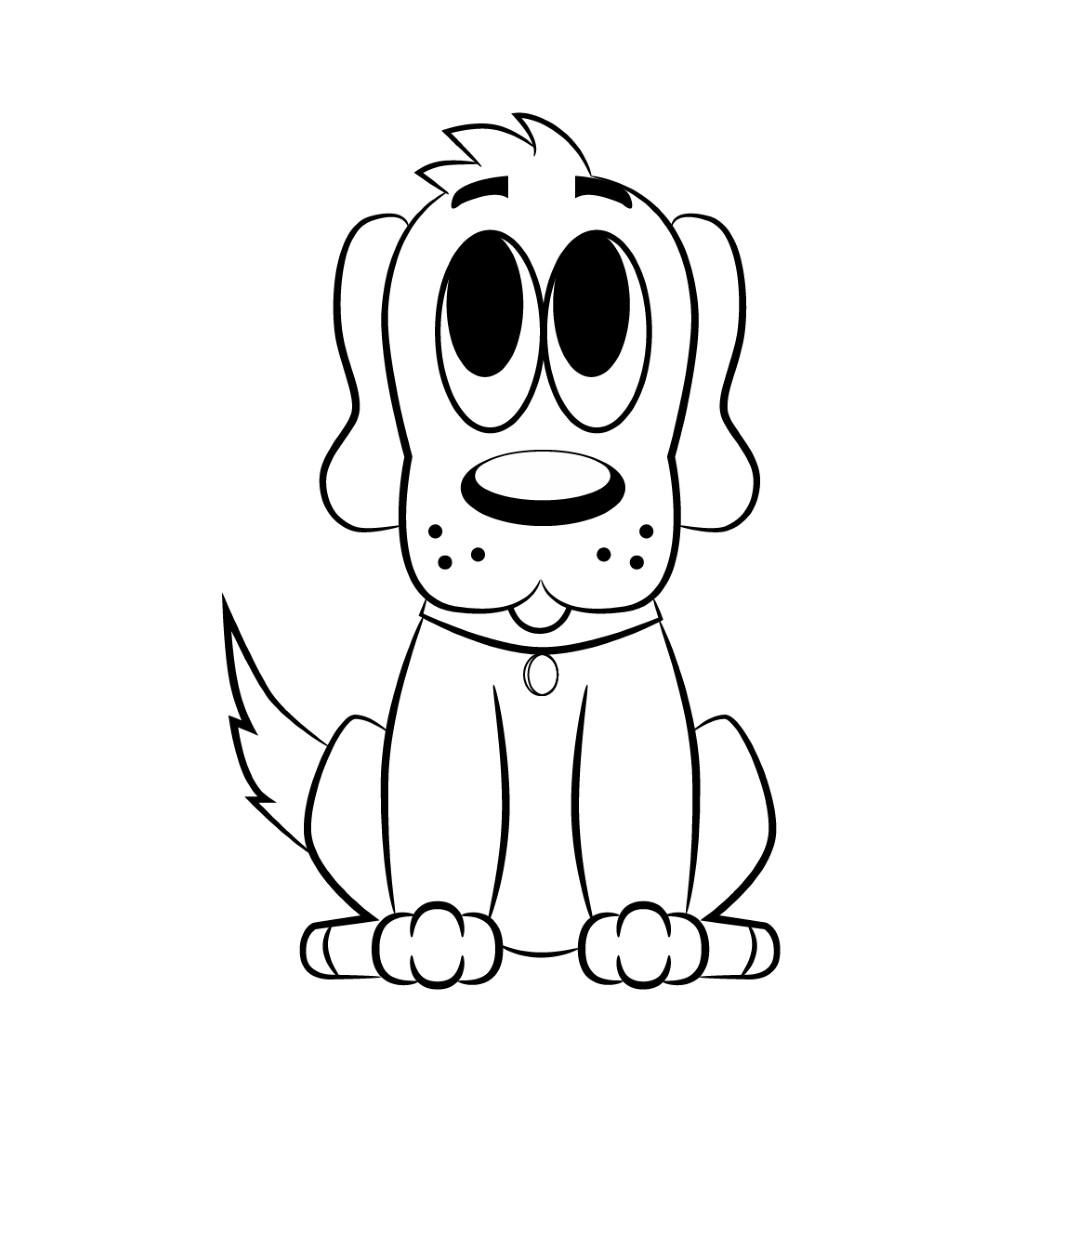 coloring cartoon dog employ dog coloring pages for your childrens creative time cartoon coloring dog